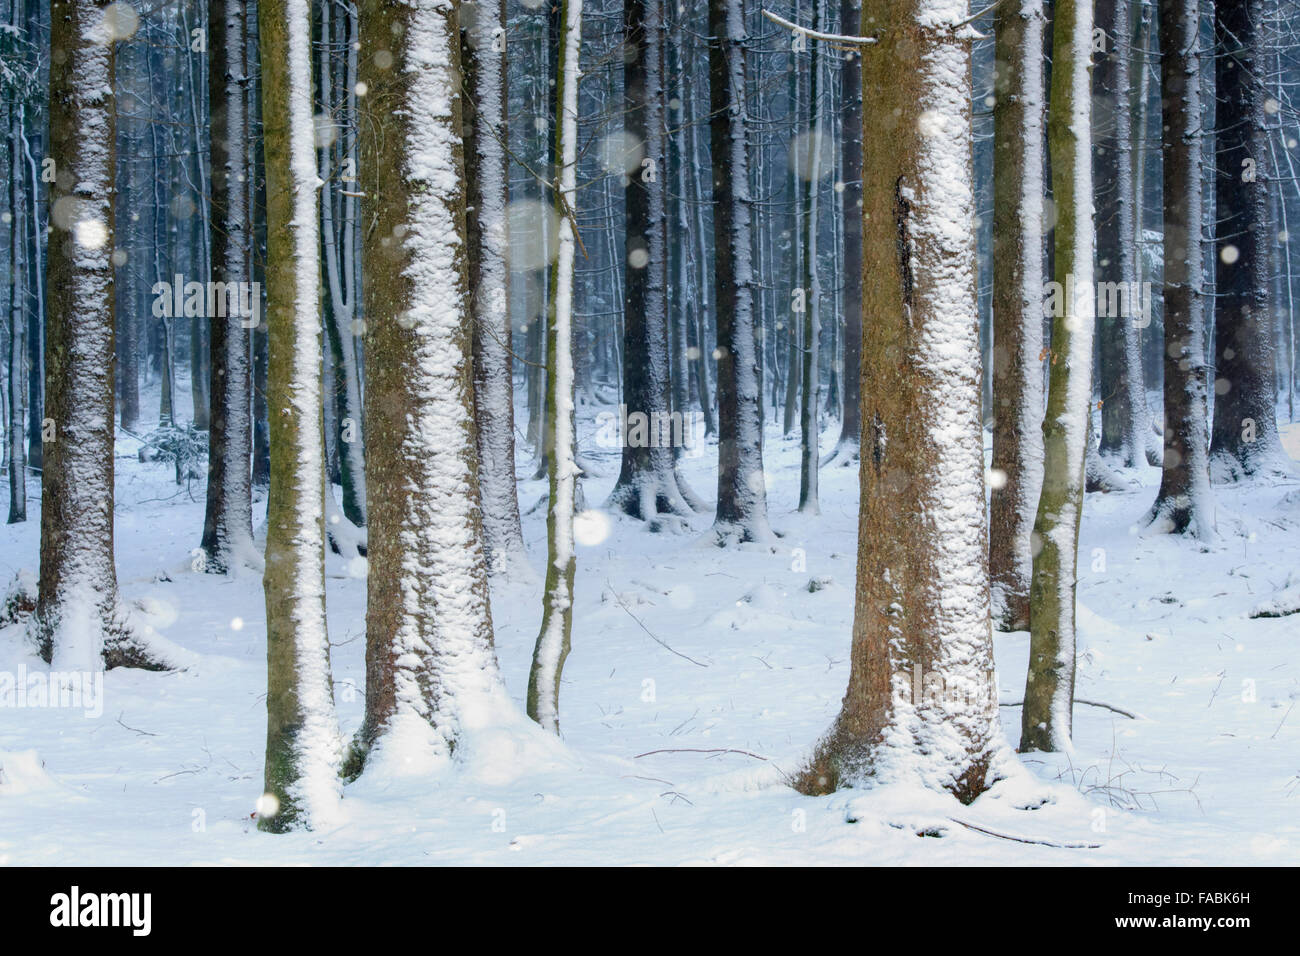 Falling snow in a pine forest, Bavarian forest, Germany - Stock Image